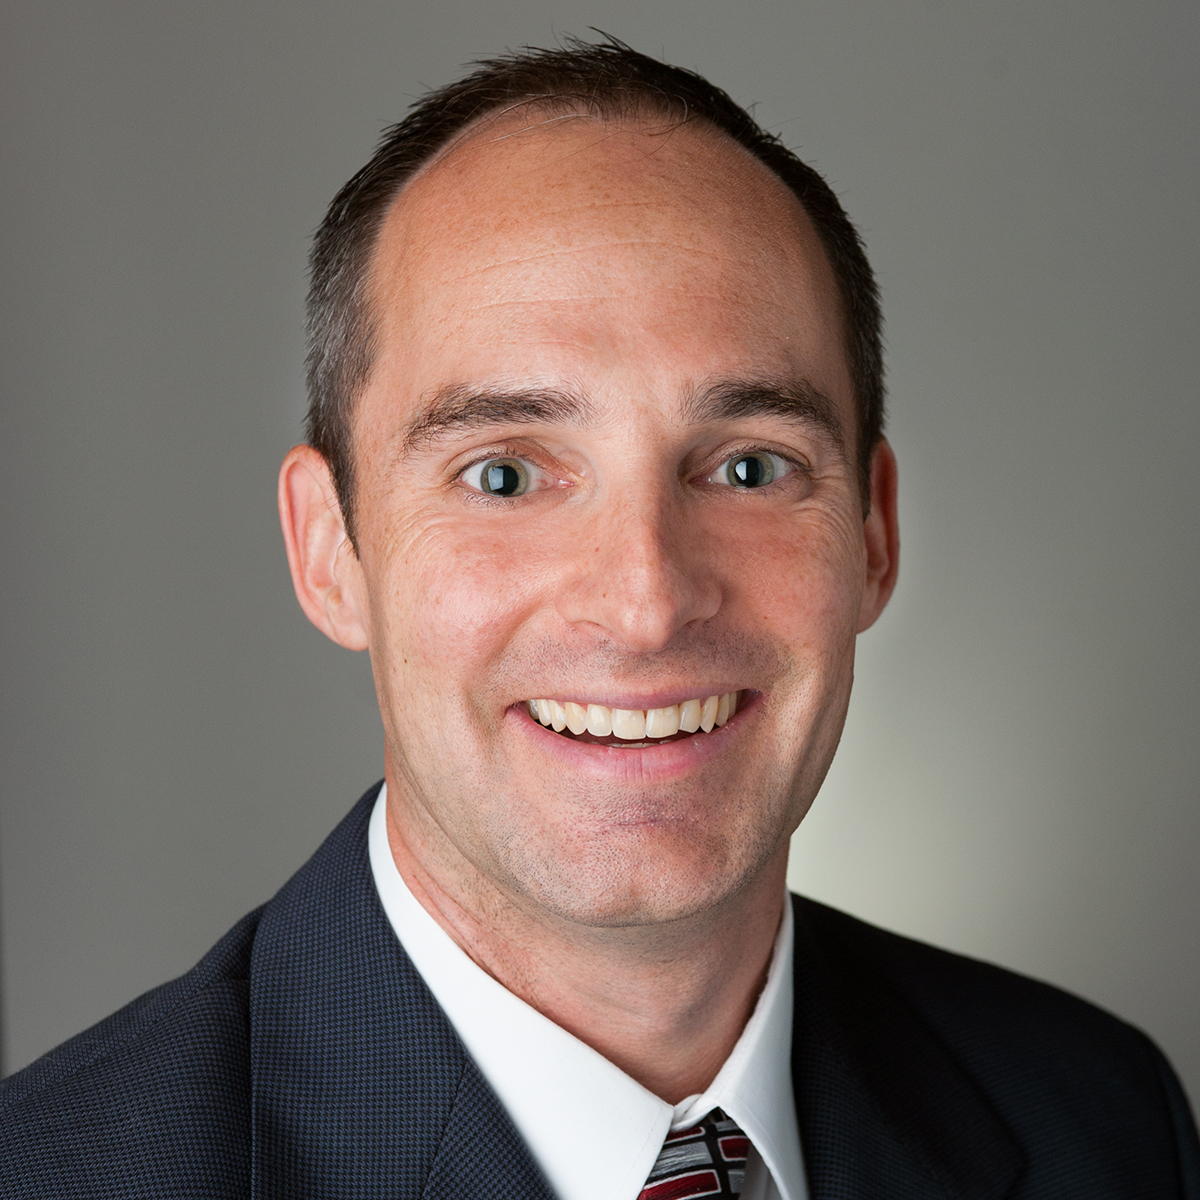 Steven Follis - TREASURERSteven Follis serves as Treasurer, ensuring AMA Indy is fiscally responsible and supporting membership. Outside of his work for the Indy chapter, Steven is Associate Director of Marketing for Indiana University Kelley School of Business.